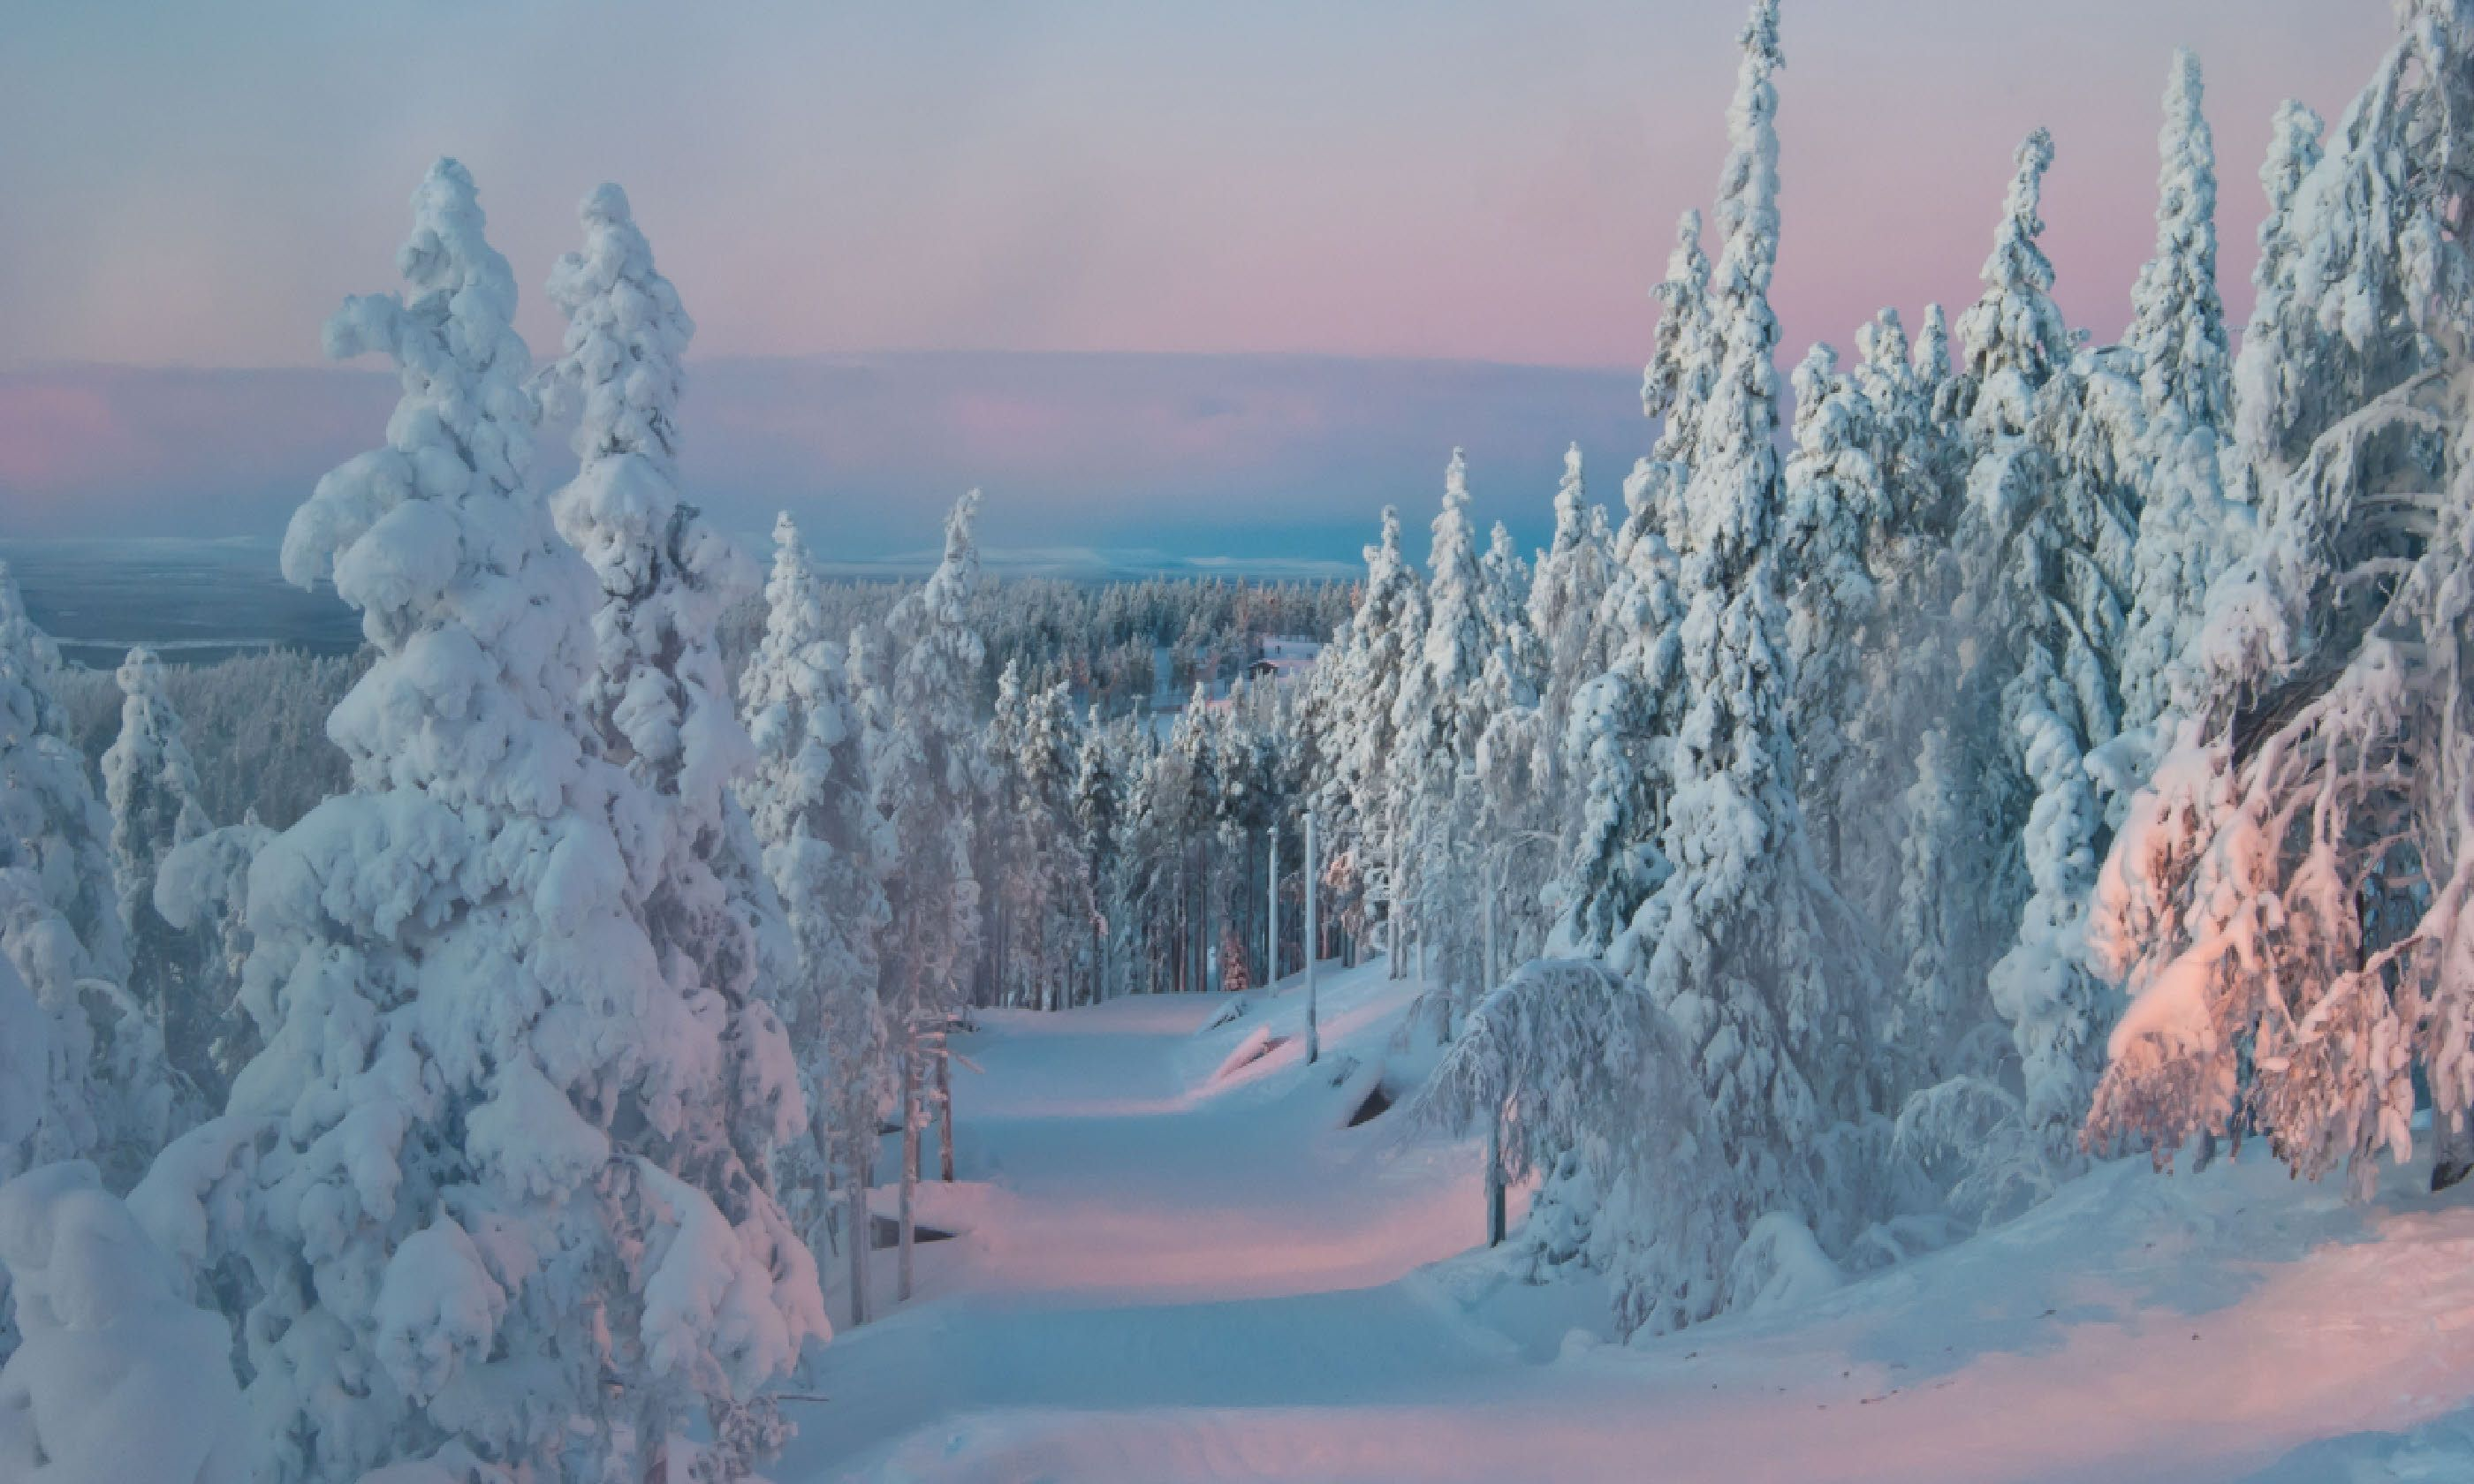 Trees at sunset in winter, Finland (Shutterstock)